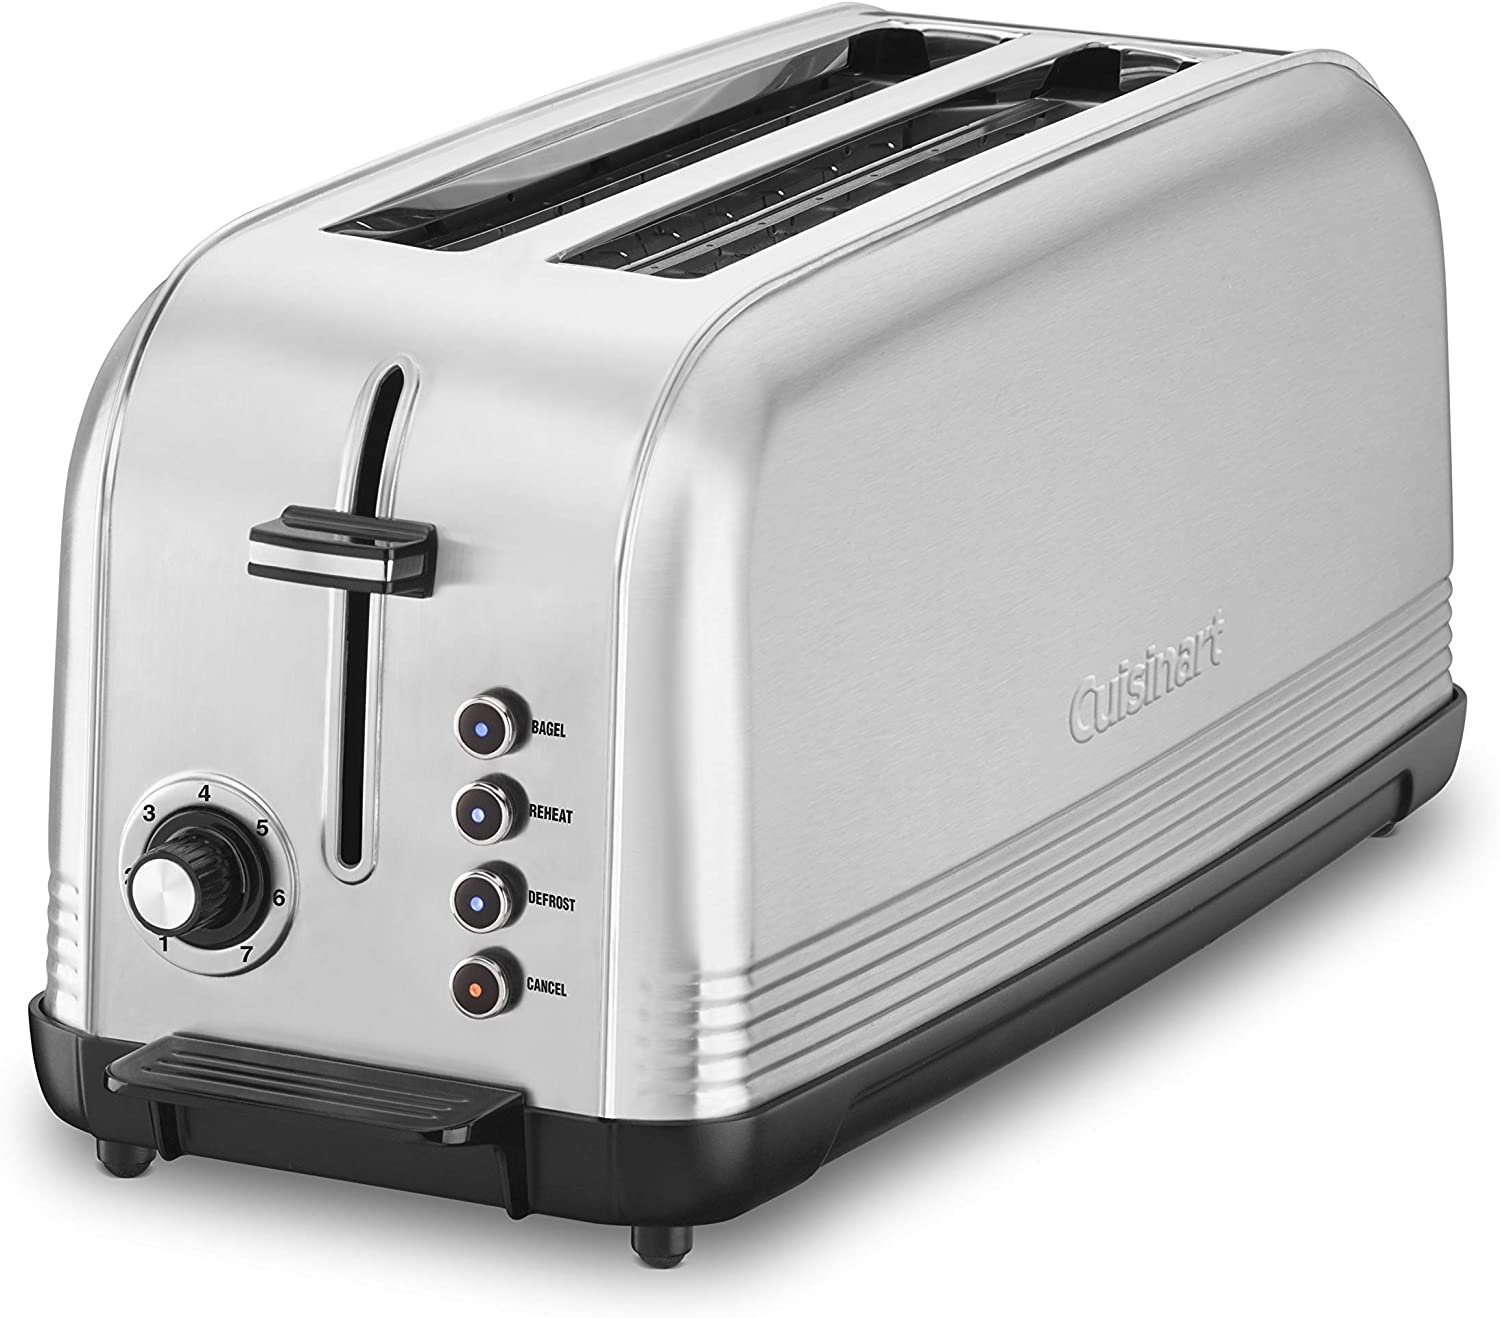 Cuisinart CPT-2500 Long Slot Toaster, Silver, 2-slice long slot